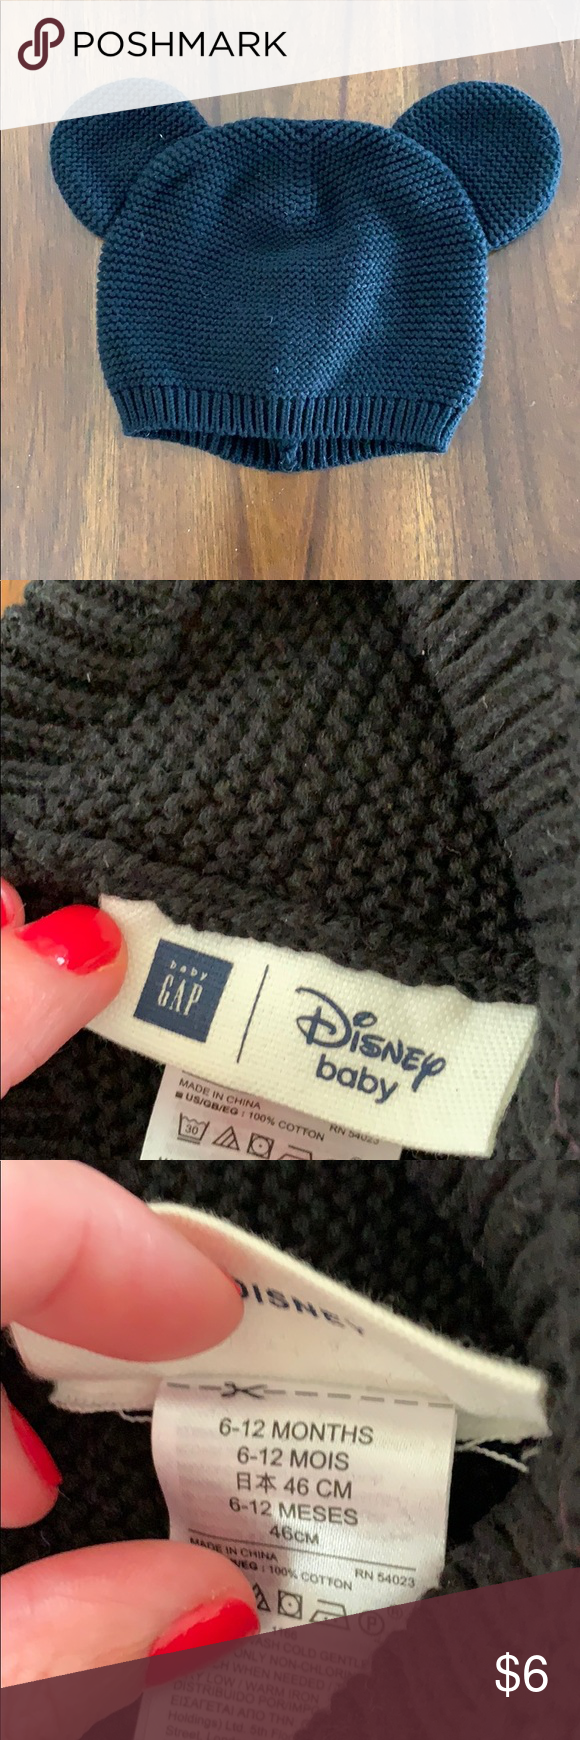 c428956eda7 Gap black Mickey Mouse ears knitted beanie Gap black Mickey Mouse ears  knitted beanie in great